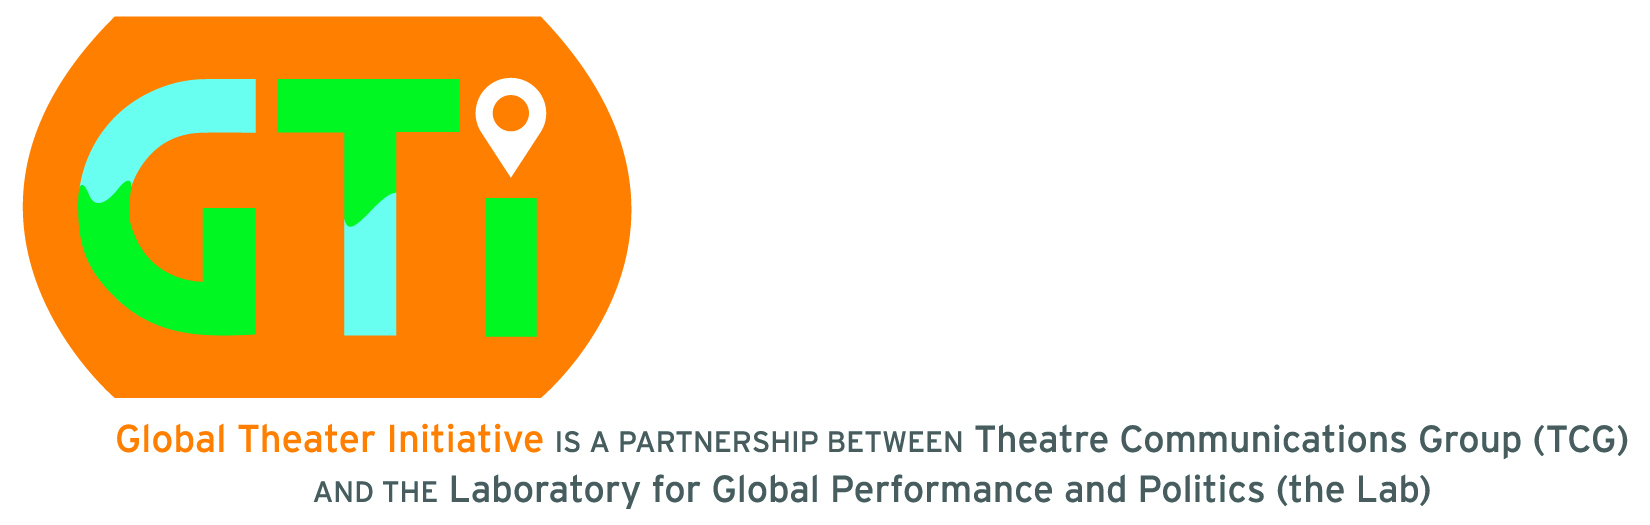 global theater initiative logo